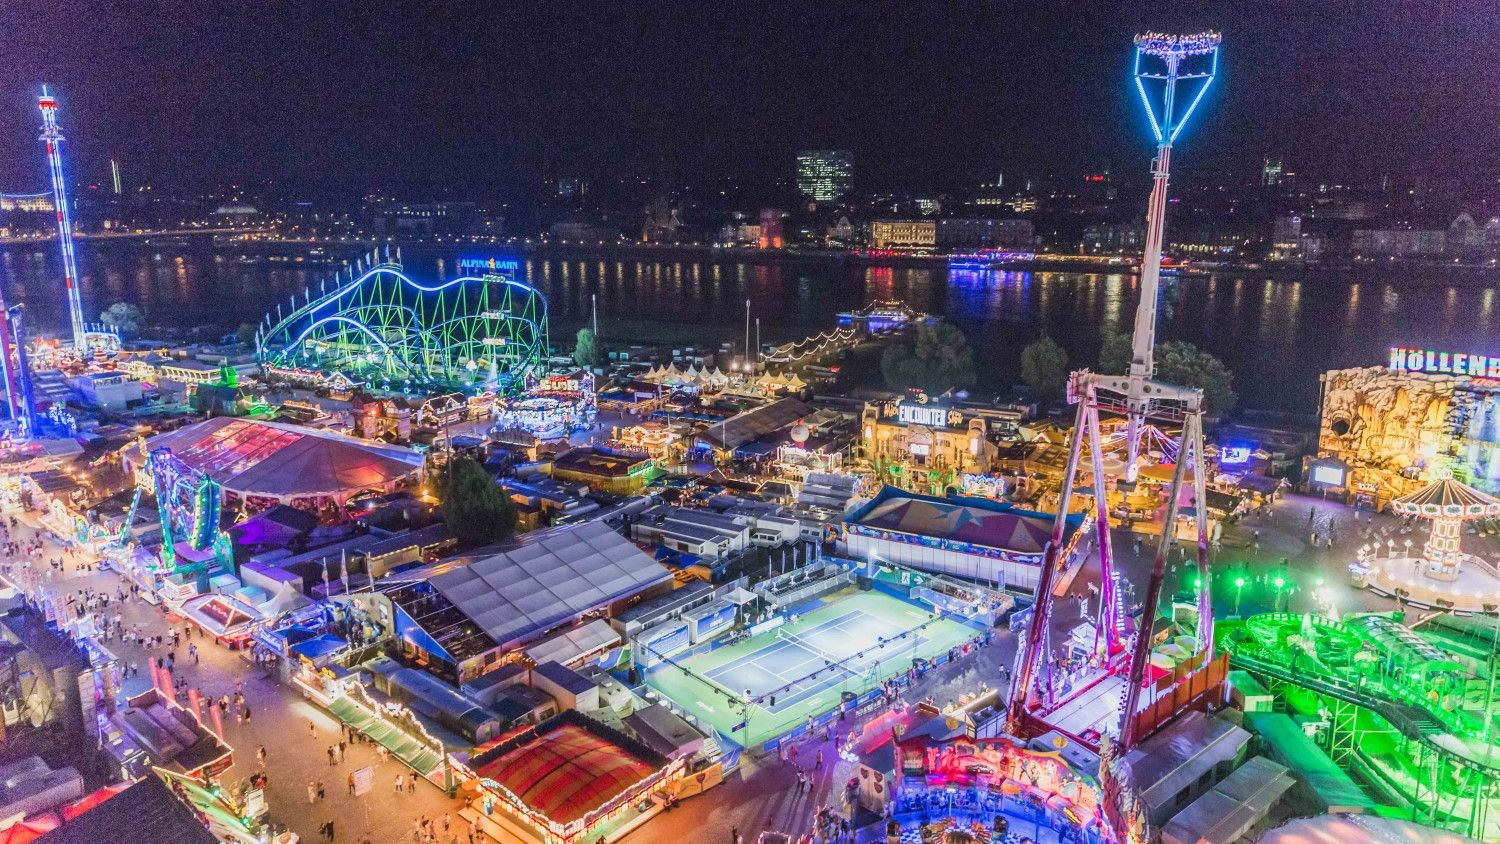 Inmitten der Rheinkirmes: Der Allpresan Center Court